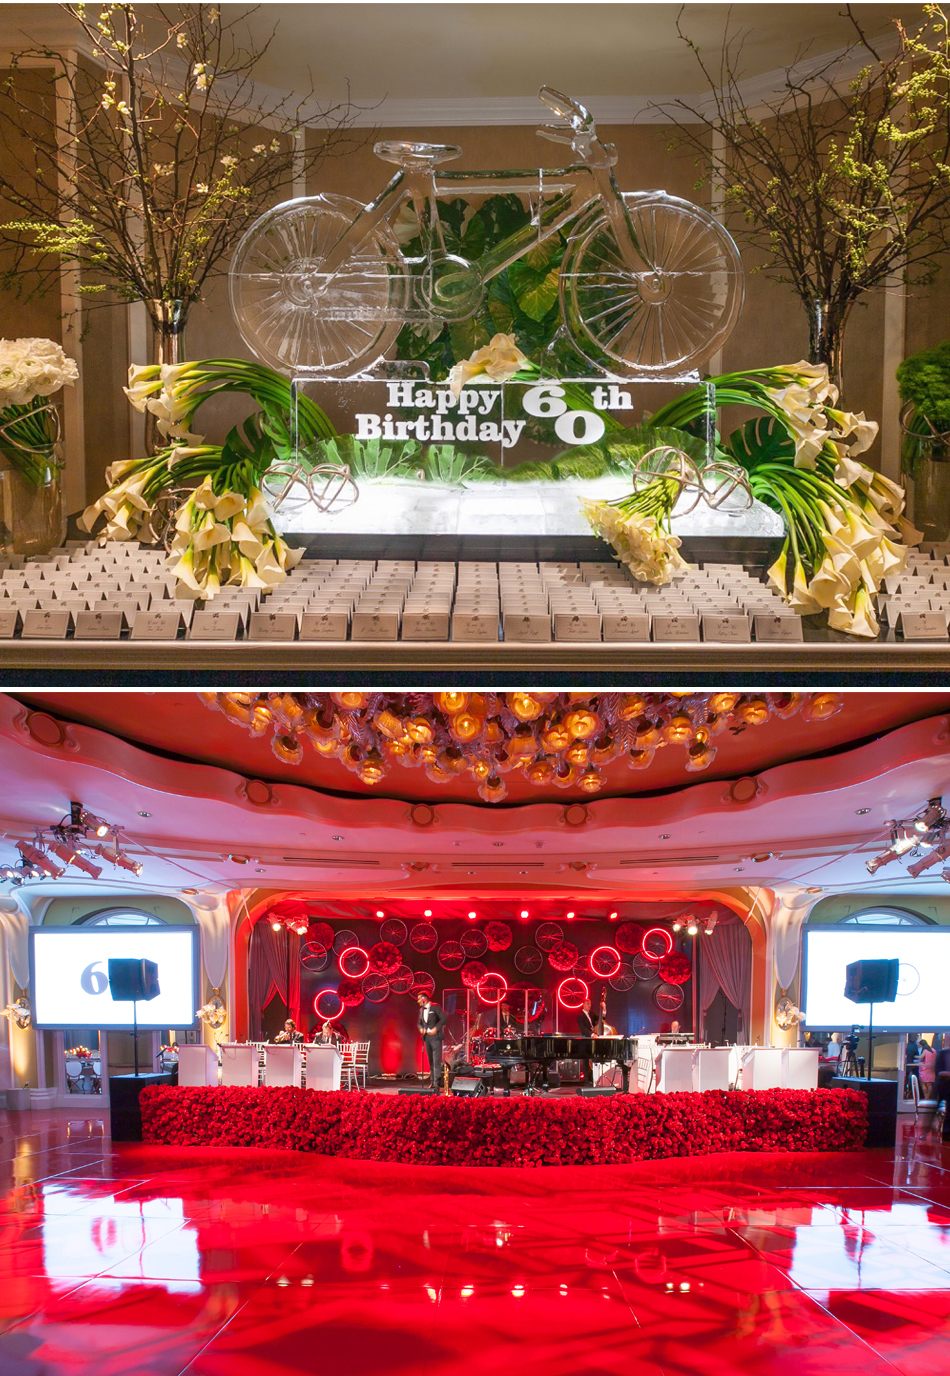 internationaleventcompany.com | International Event Company Los Angeles Wedding Planner and Designer | Birthday Parties at The Beverly Hills Hotel | Luxury Event Planners in Southern California _ (1).jpg